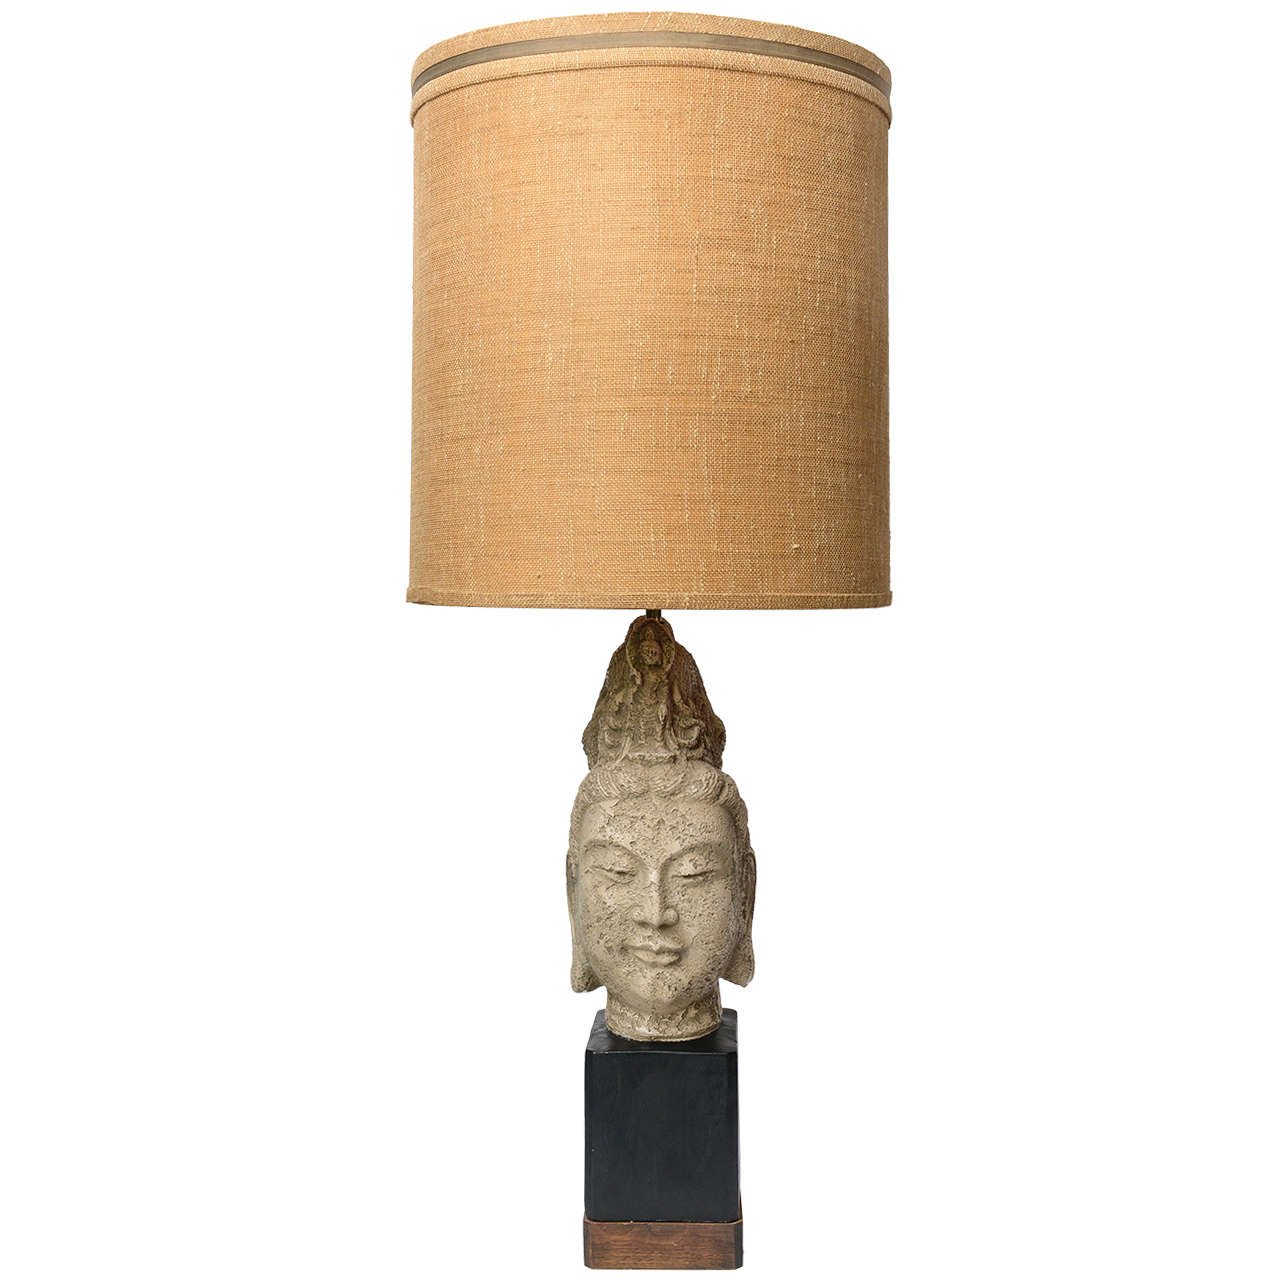 James mont buddha table lamp for sale at 1stdibs james mont buddha table lamp for sale aloadofball Images